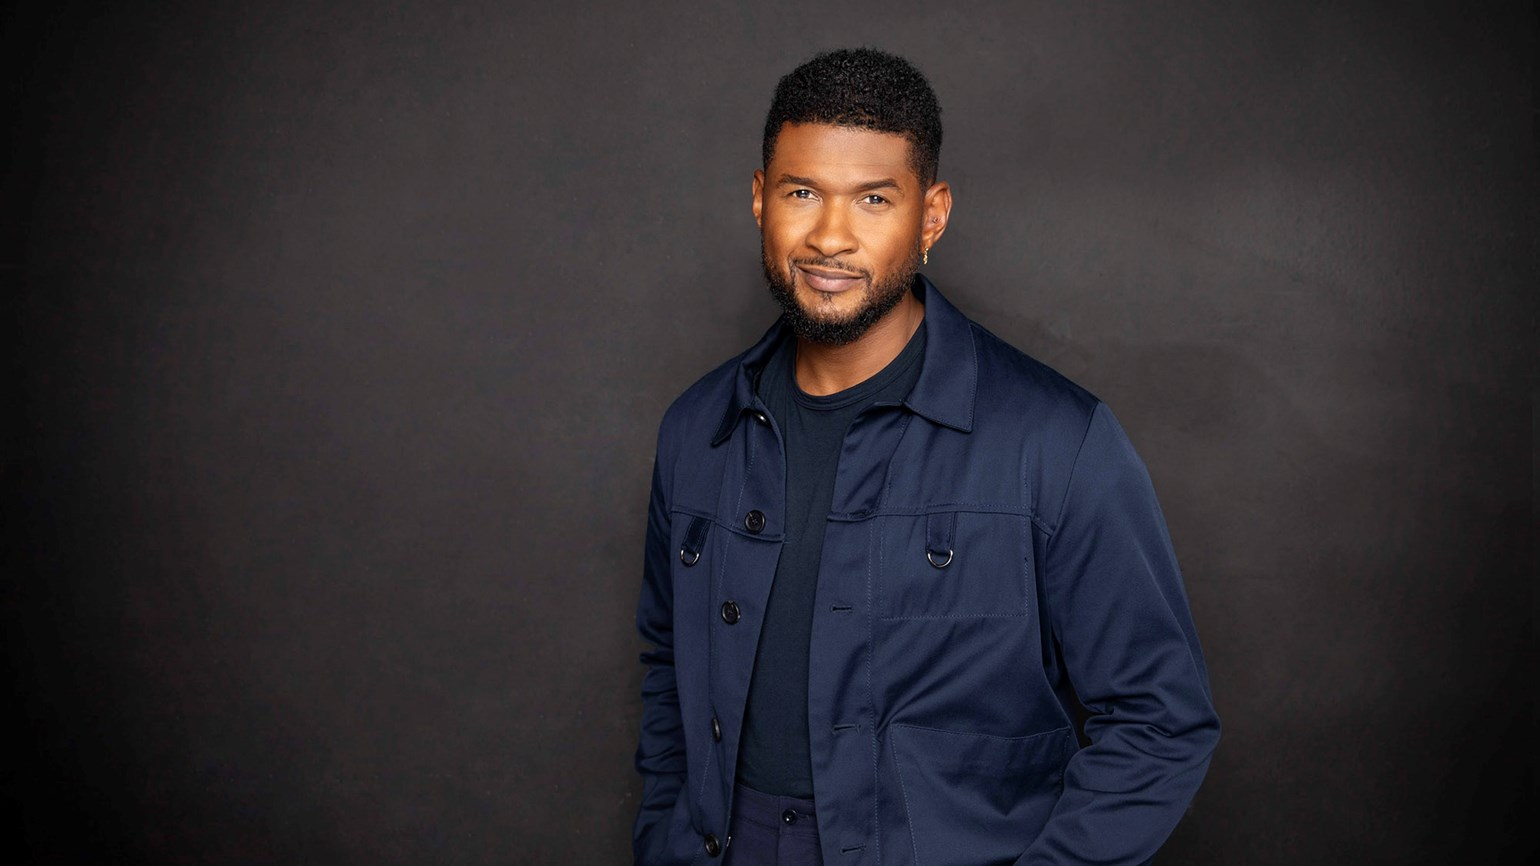 Usher to begin residency at Caesars Palace in 2021